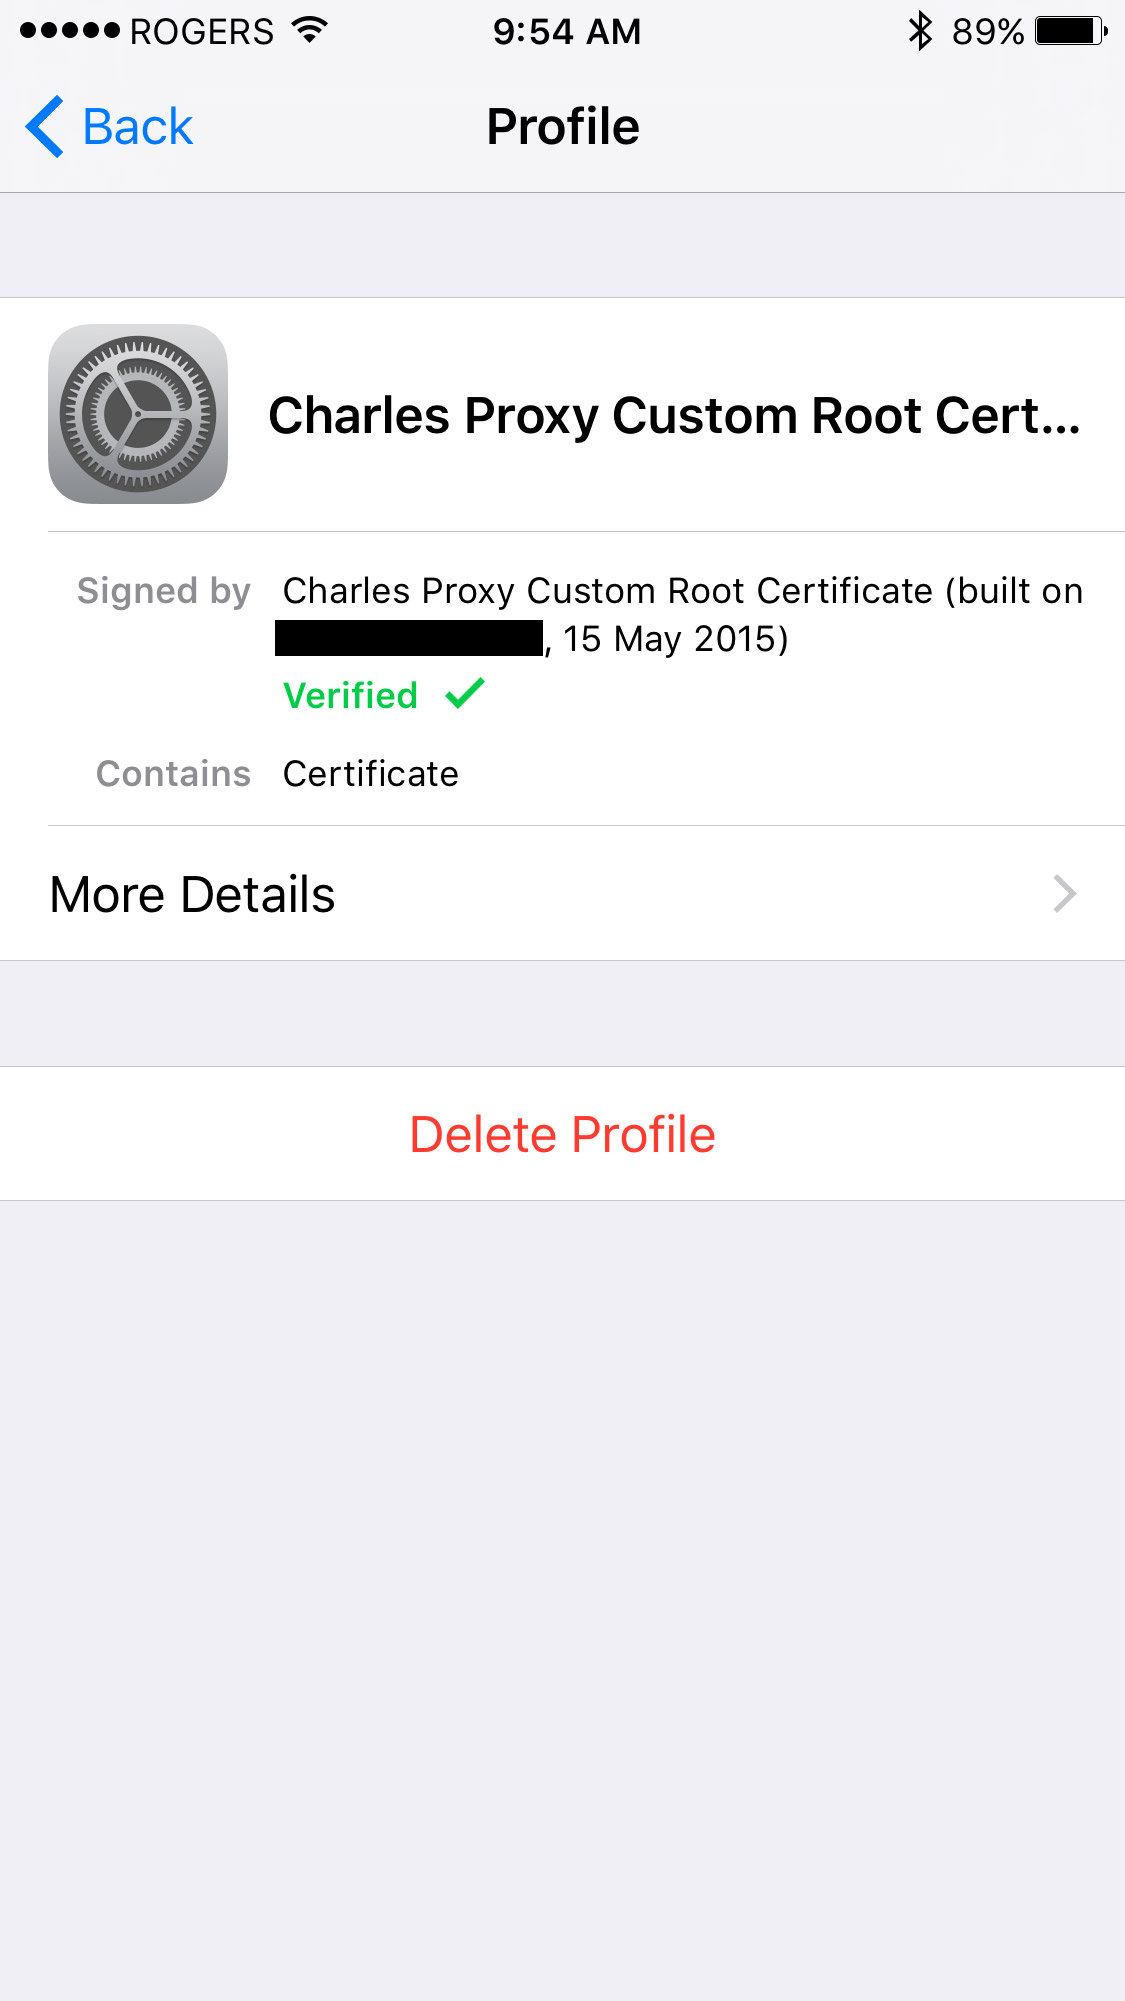 Testing SSL using Charles Proxy on iOS Devices